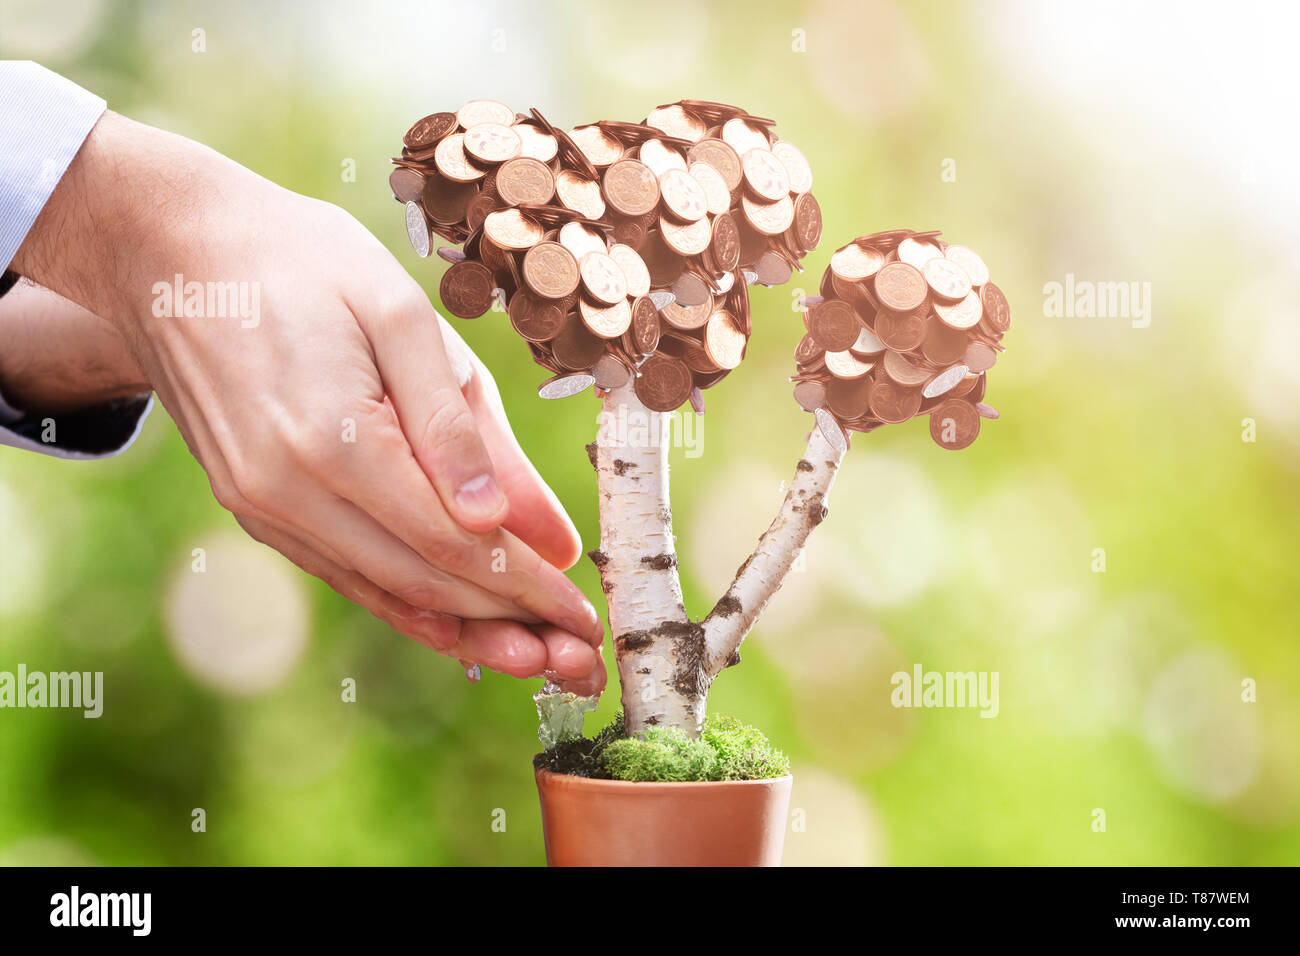 Close-up Of Person's Hand Watering Money Plant At Outdoors - Stock Image